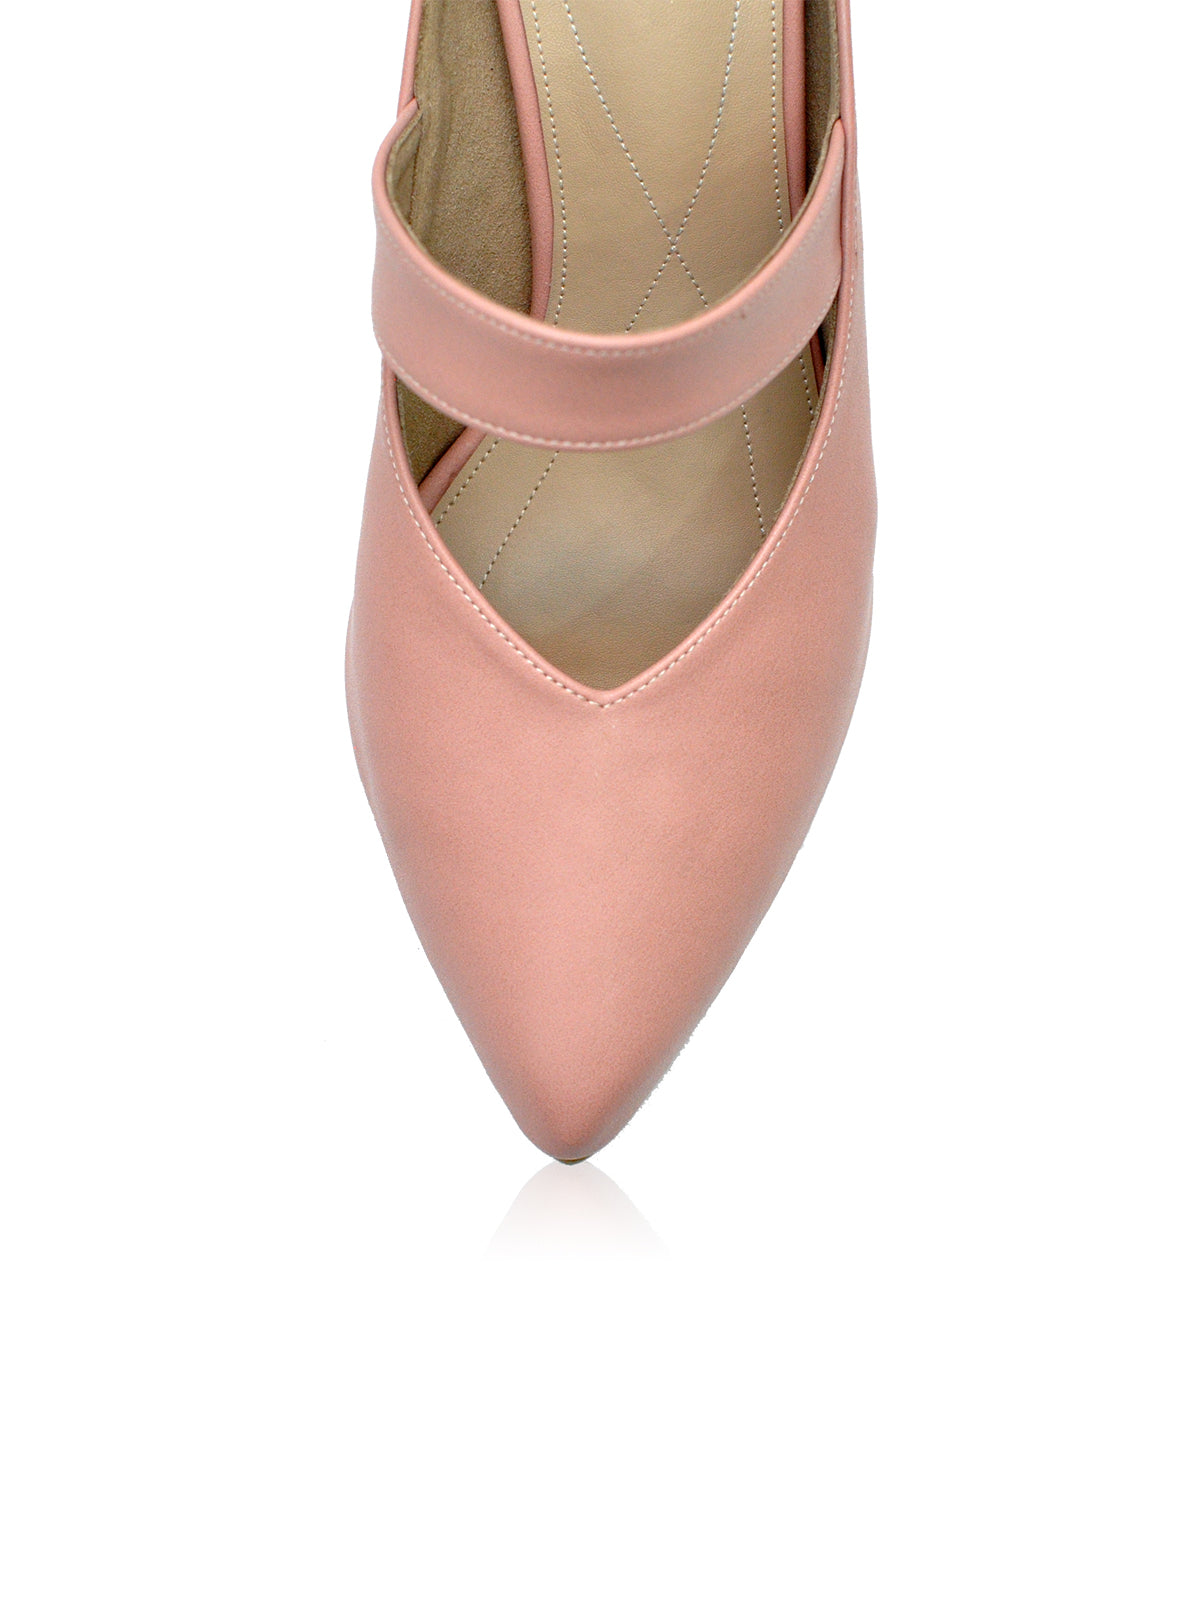 Saddie 2.0 Mules in Dusty Pink